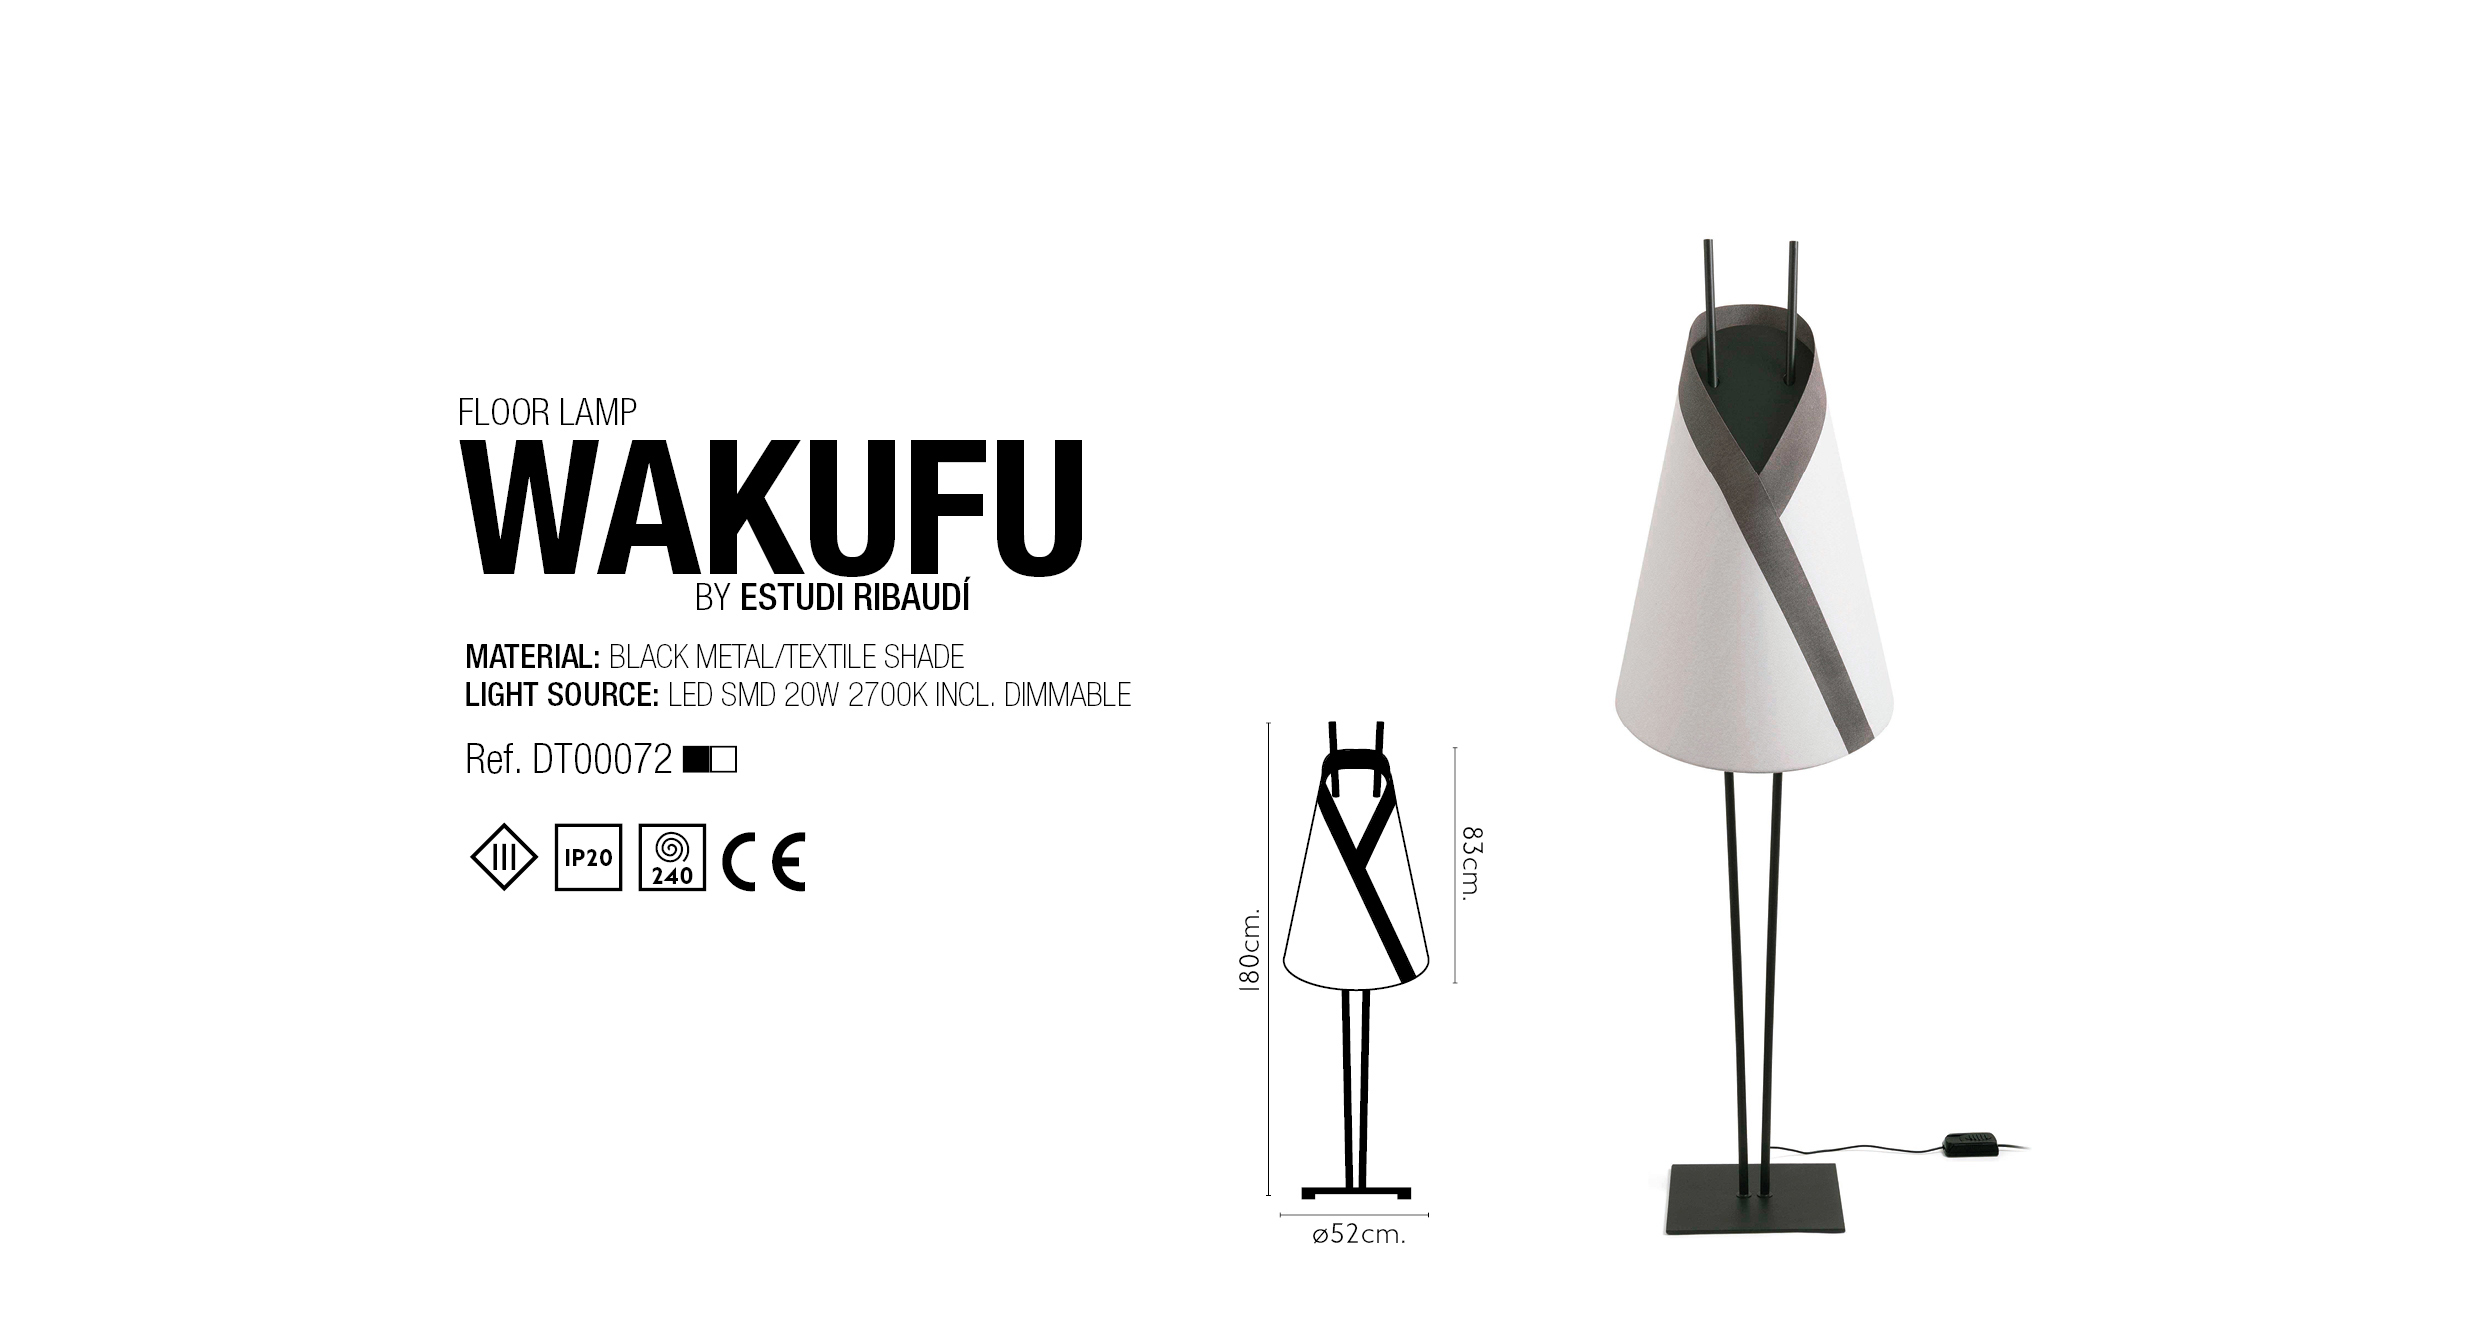 WAKUFU FLOOR LAMP Wakufu Is A Family Inspired By Eastern Culture The Art Of Origami Shade Reminiscent Kimono Projects Dim Even Light